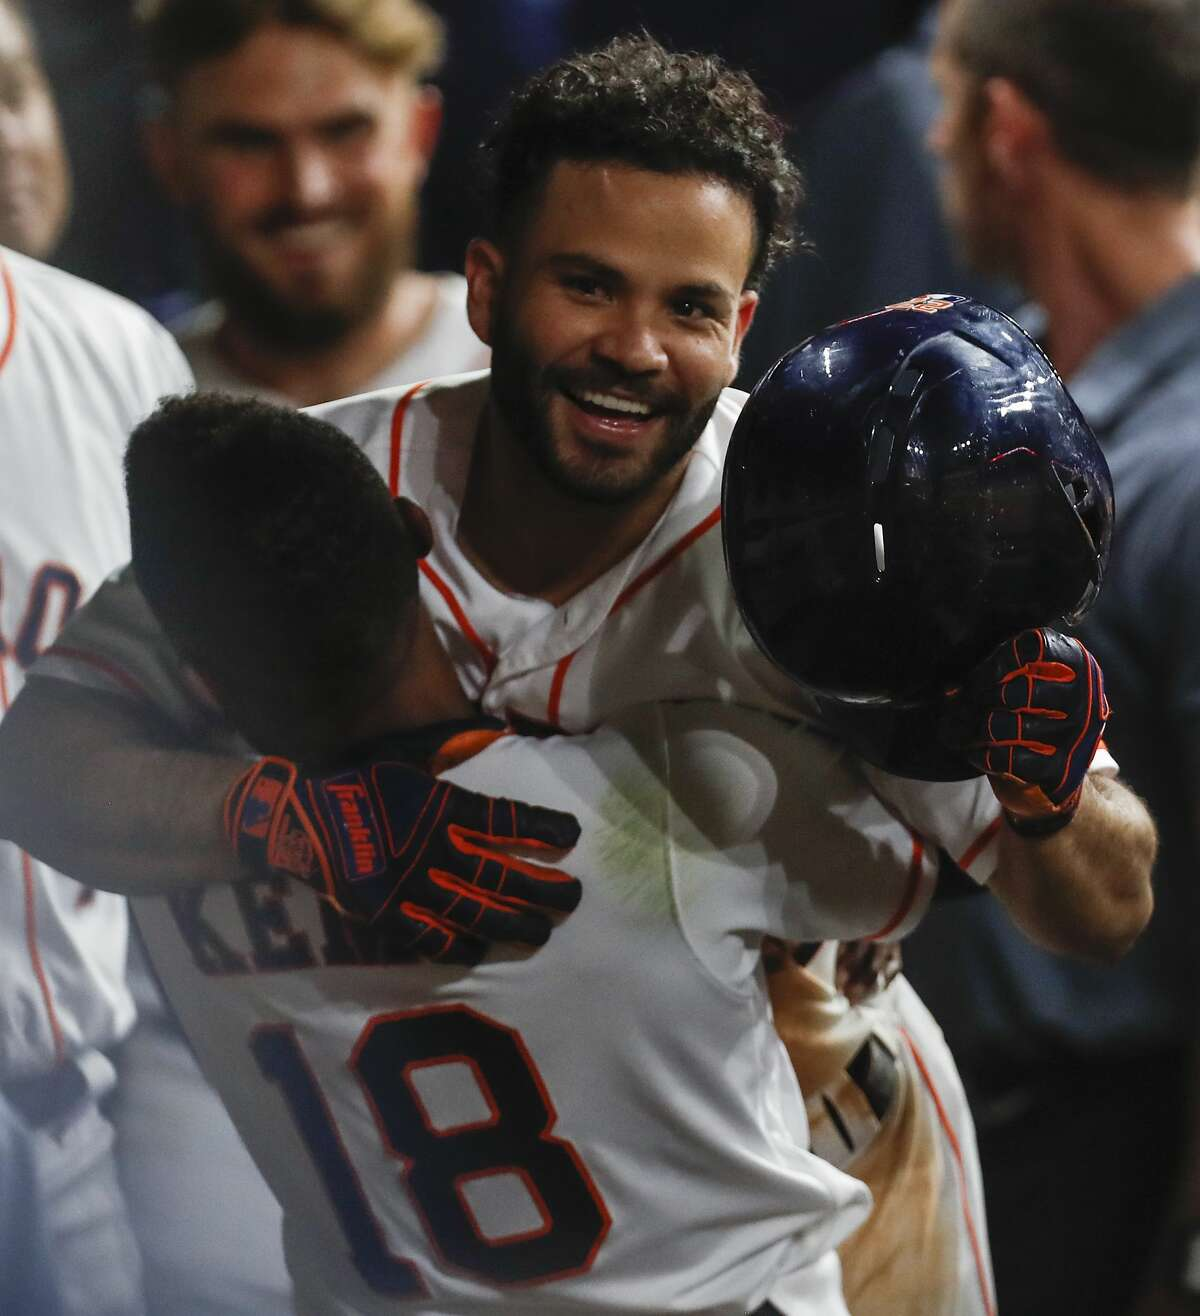 Houston Astros second baseman Jose Altuve and left fielder Tony Kemp (18) embrace as they celebrate Altuve's solo home run off of Tampa Bay Rays starting pitcher Nathan Eovaldi during the sixth inning of a major league baseball game at Minute Maid Park on Wednesday, June 20, 2018, in Houston. It was his second home run of the game. ( Brett Coomer / Houston Chronicle )